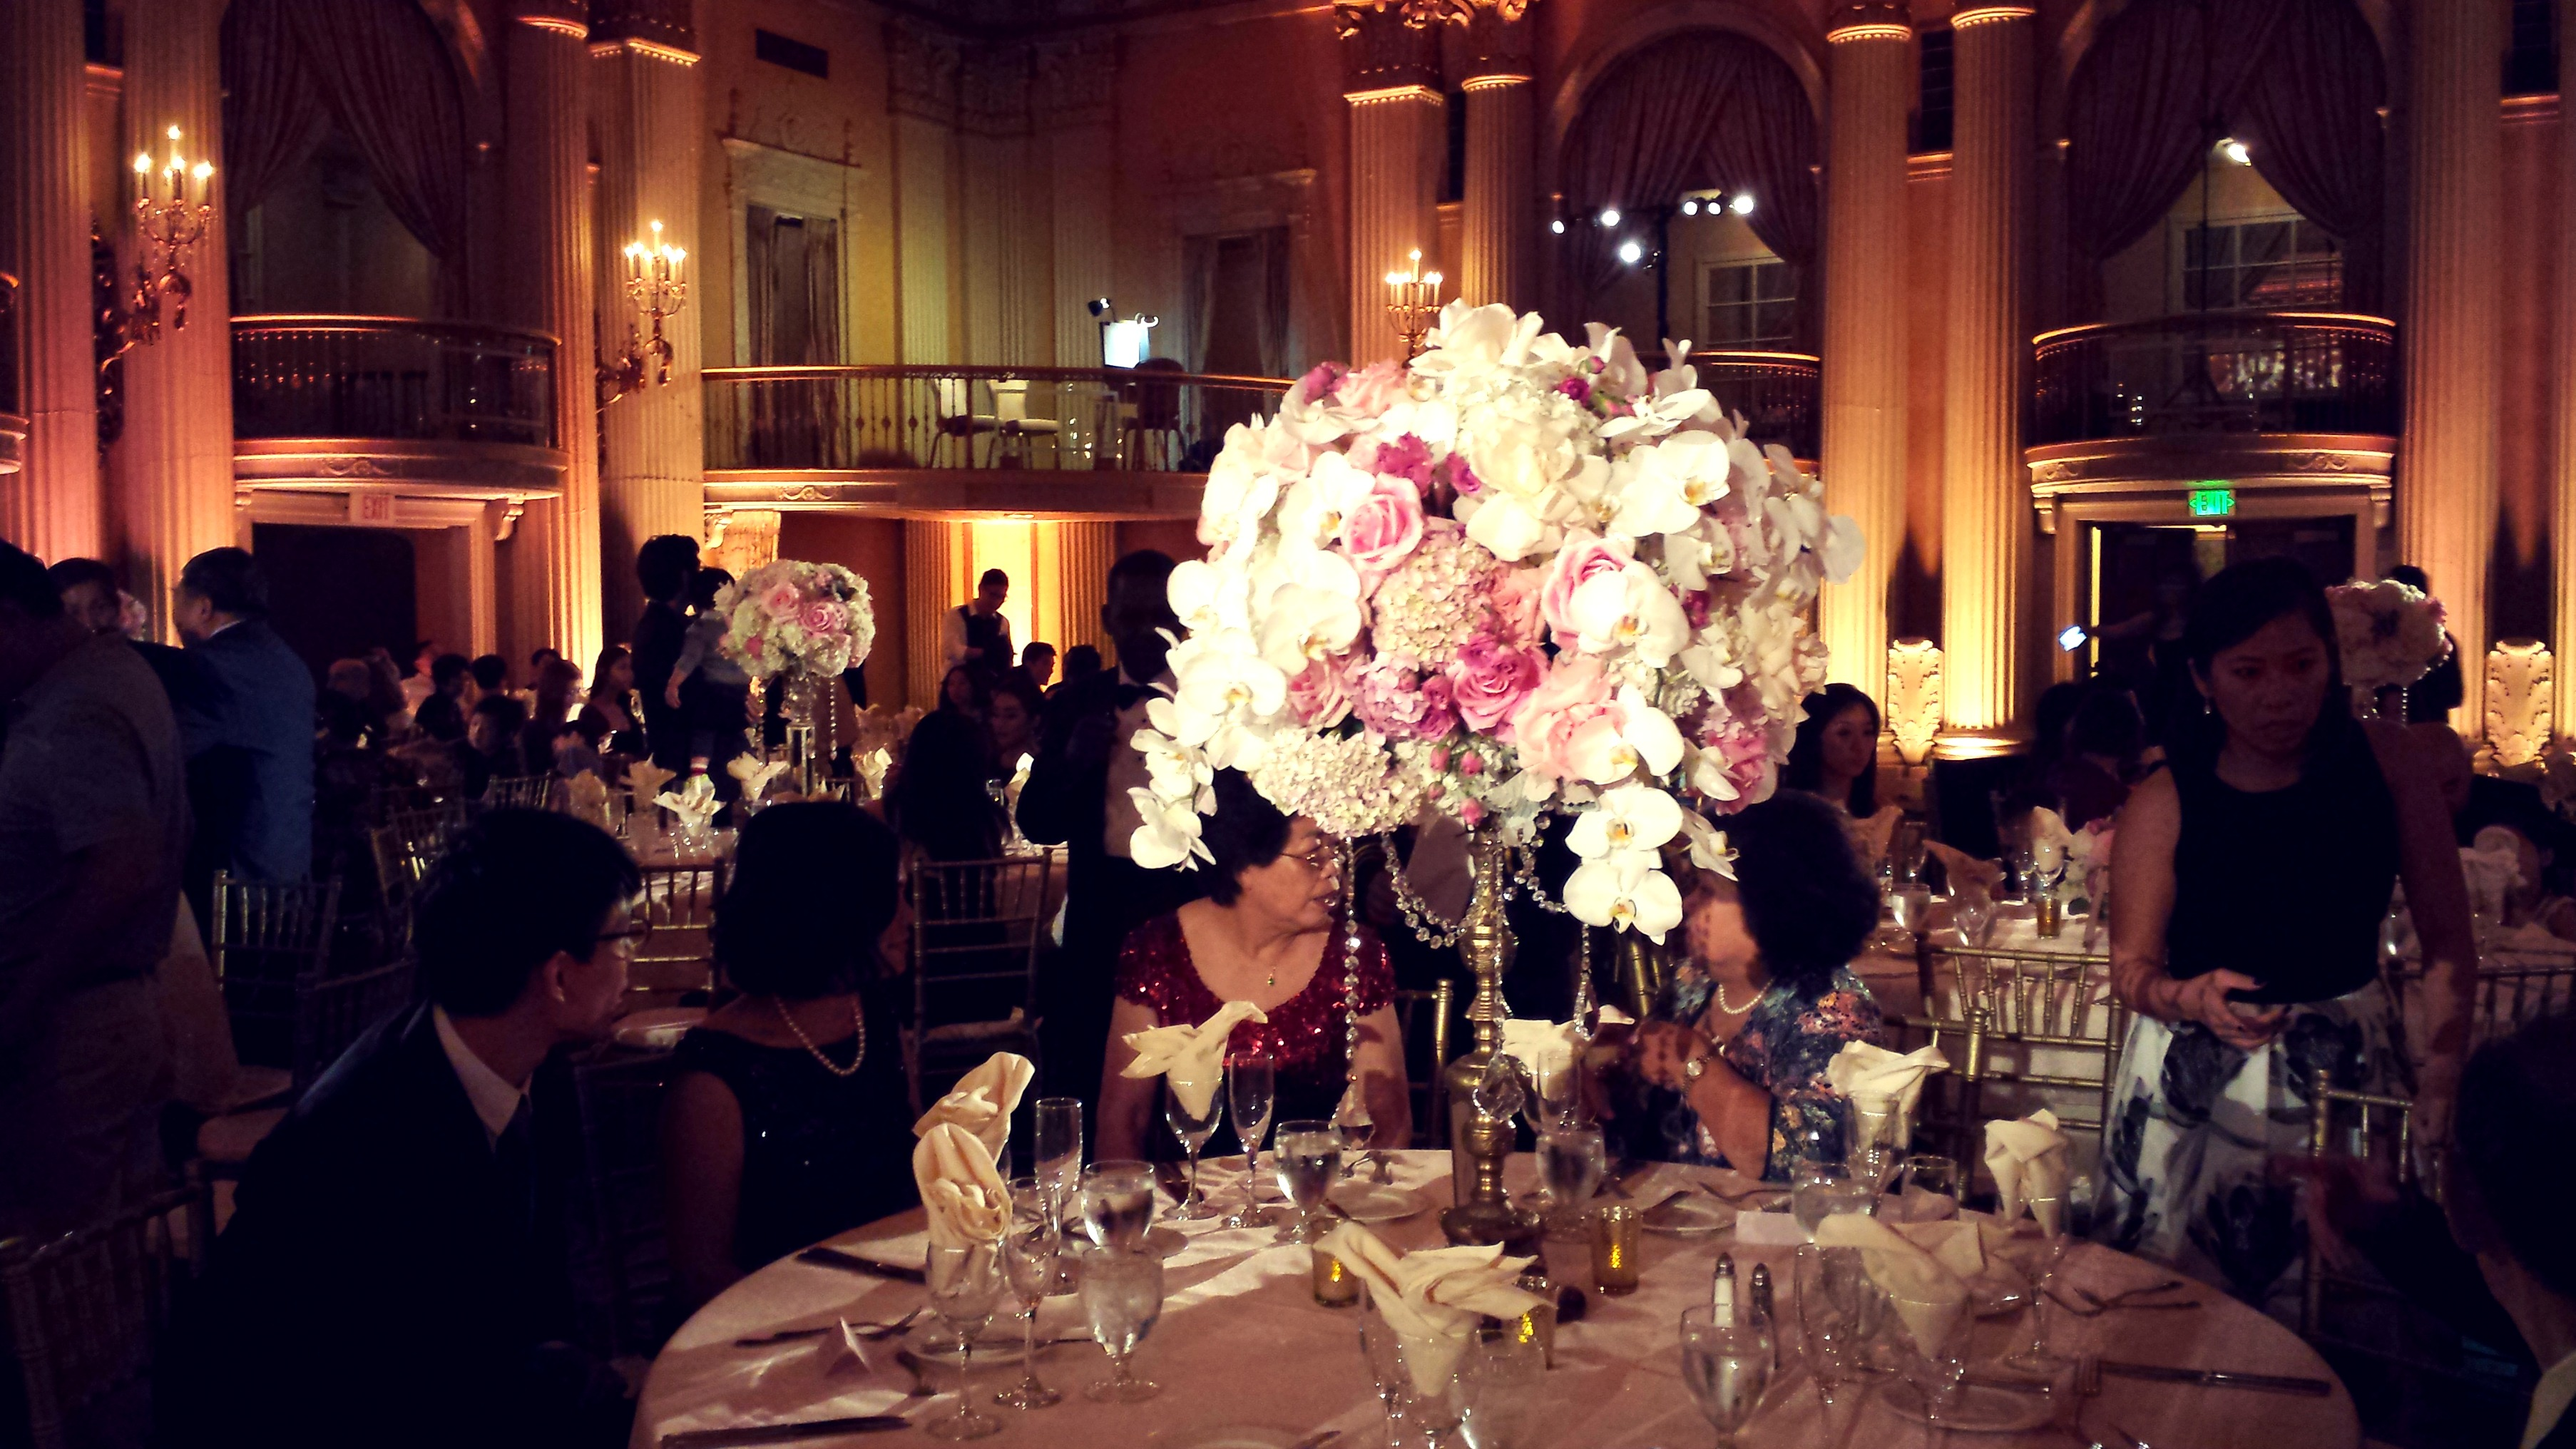 biltmore hotel los angeles live band